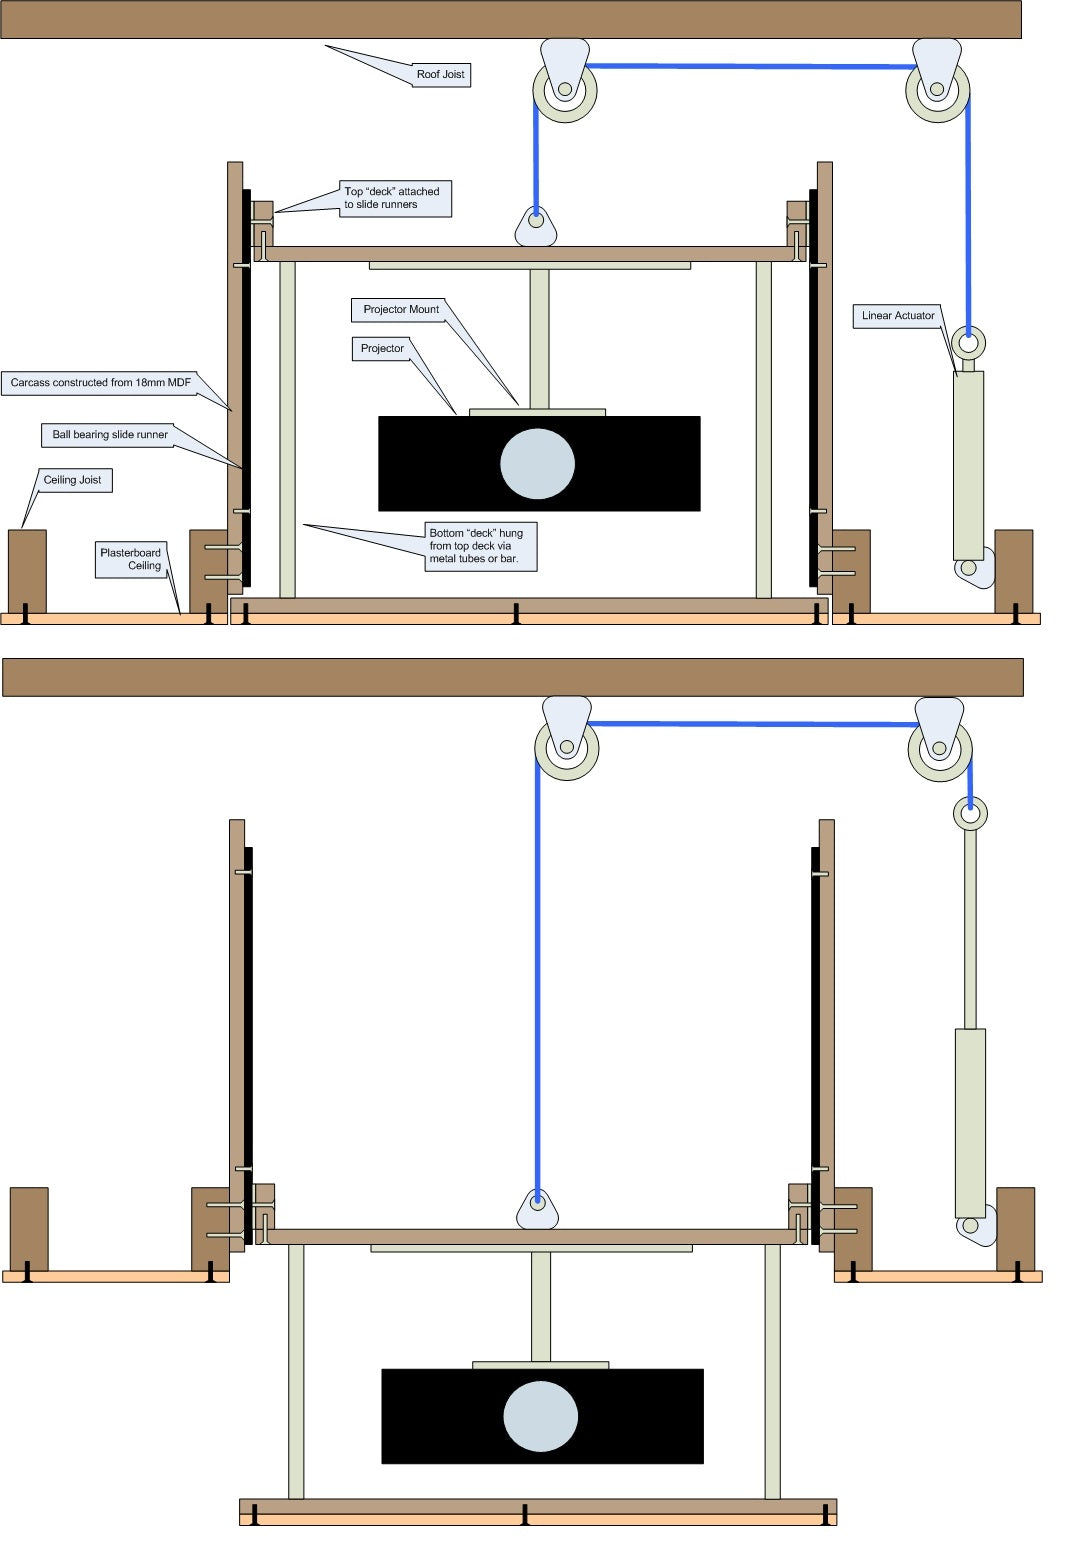 Linear Actuator Projector lift using a pulley